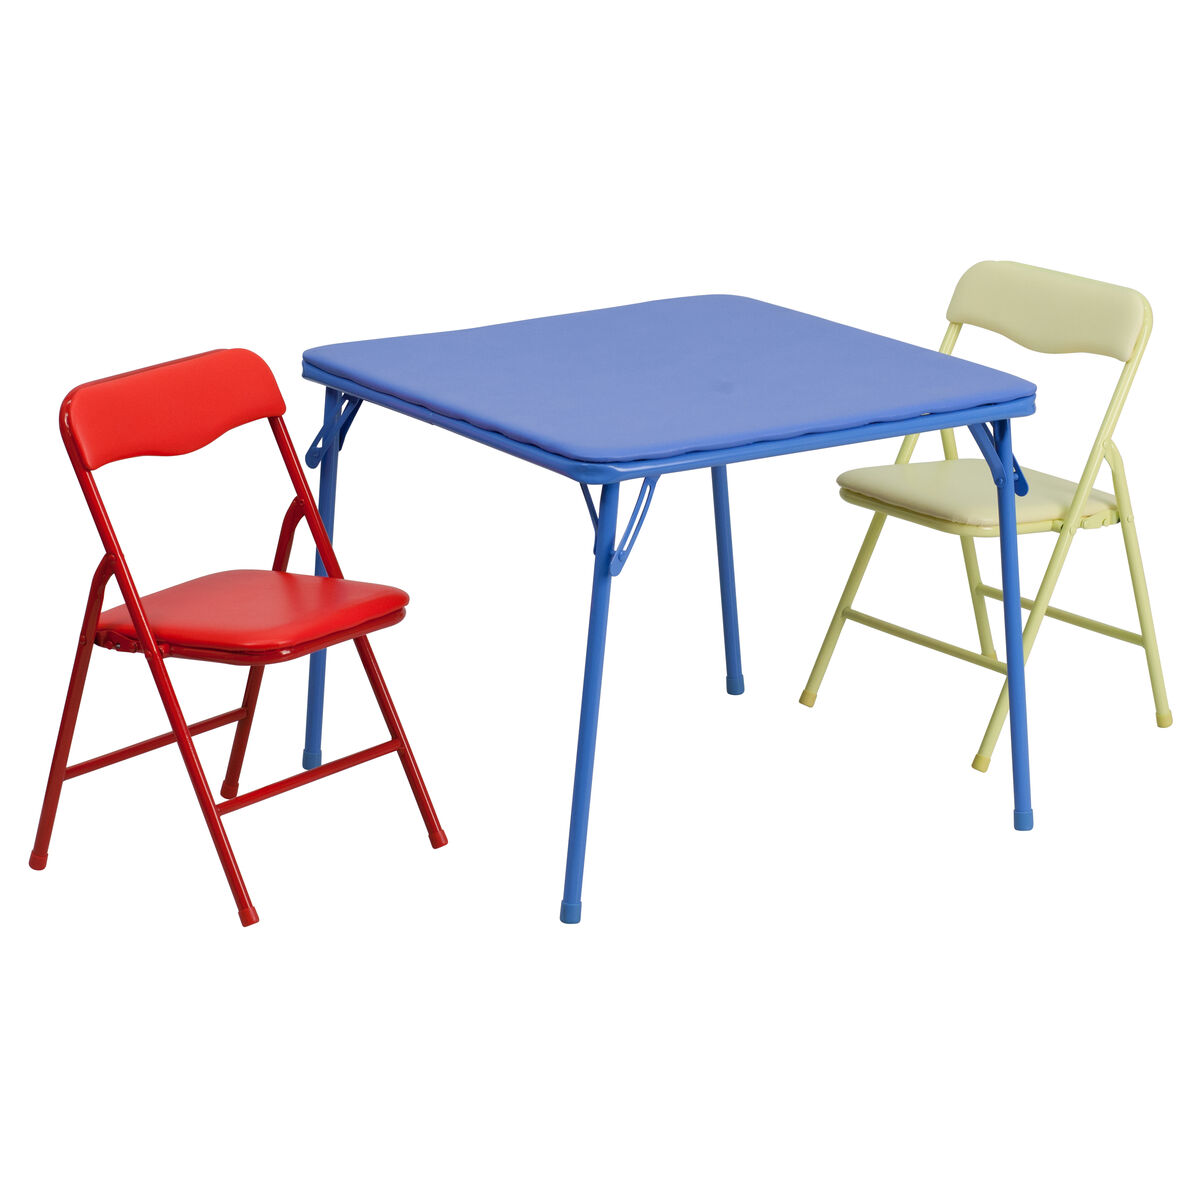 3 piece kids folding table set jb 10 card gg bizchair our kids colorful 3 piece folding table and chair set is on sale now watchthetrailerfo